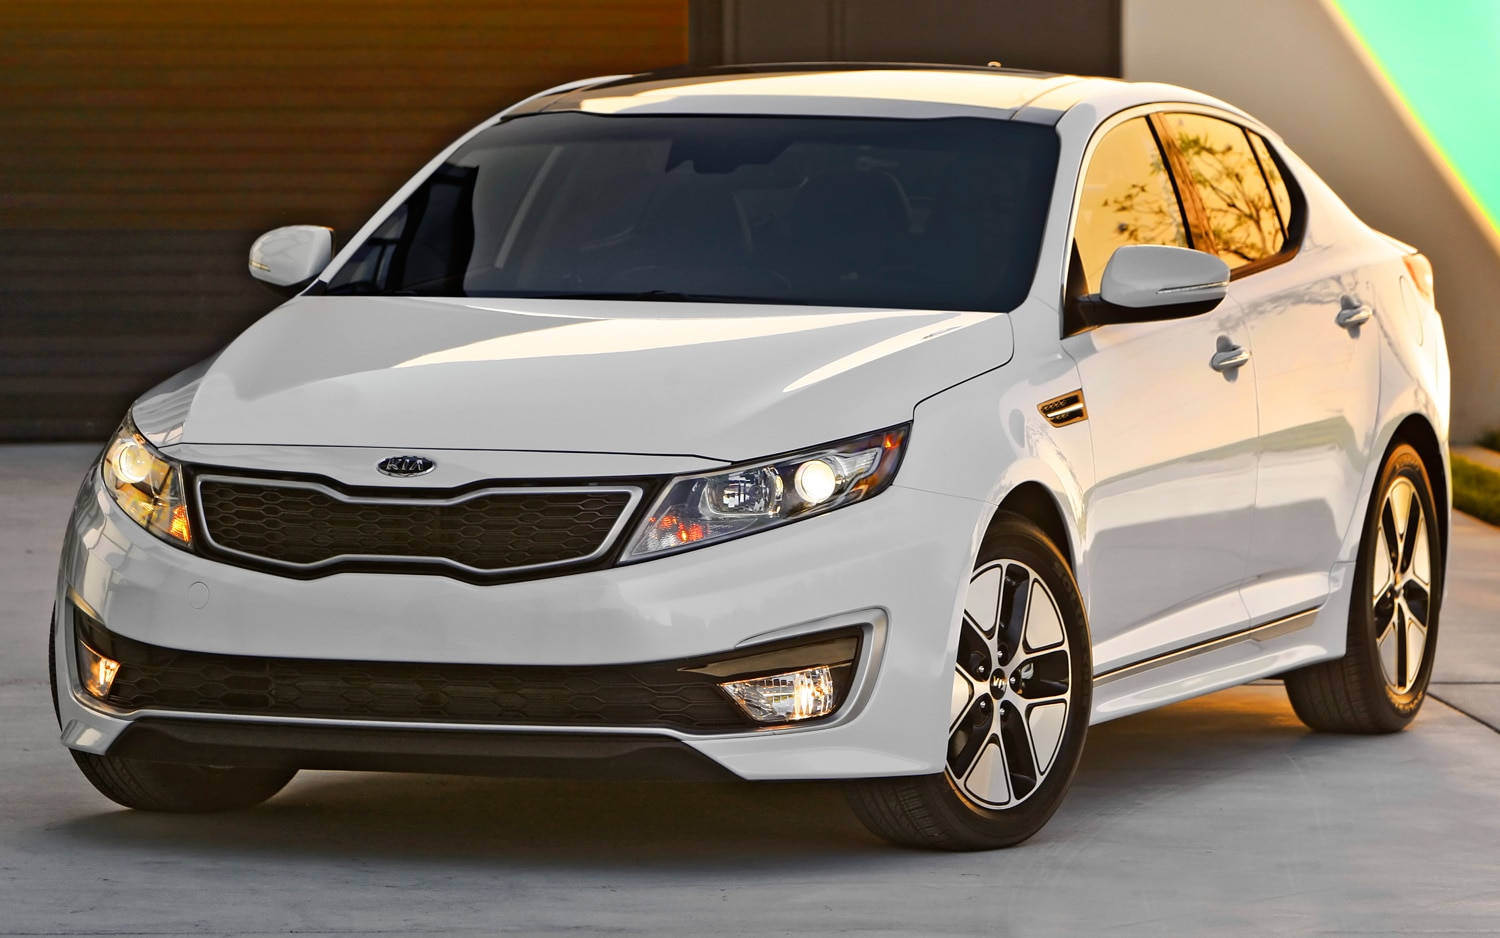 2013 Kia Optima Hybrid Front View1